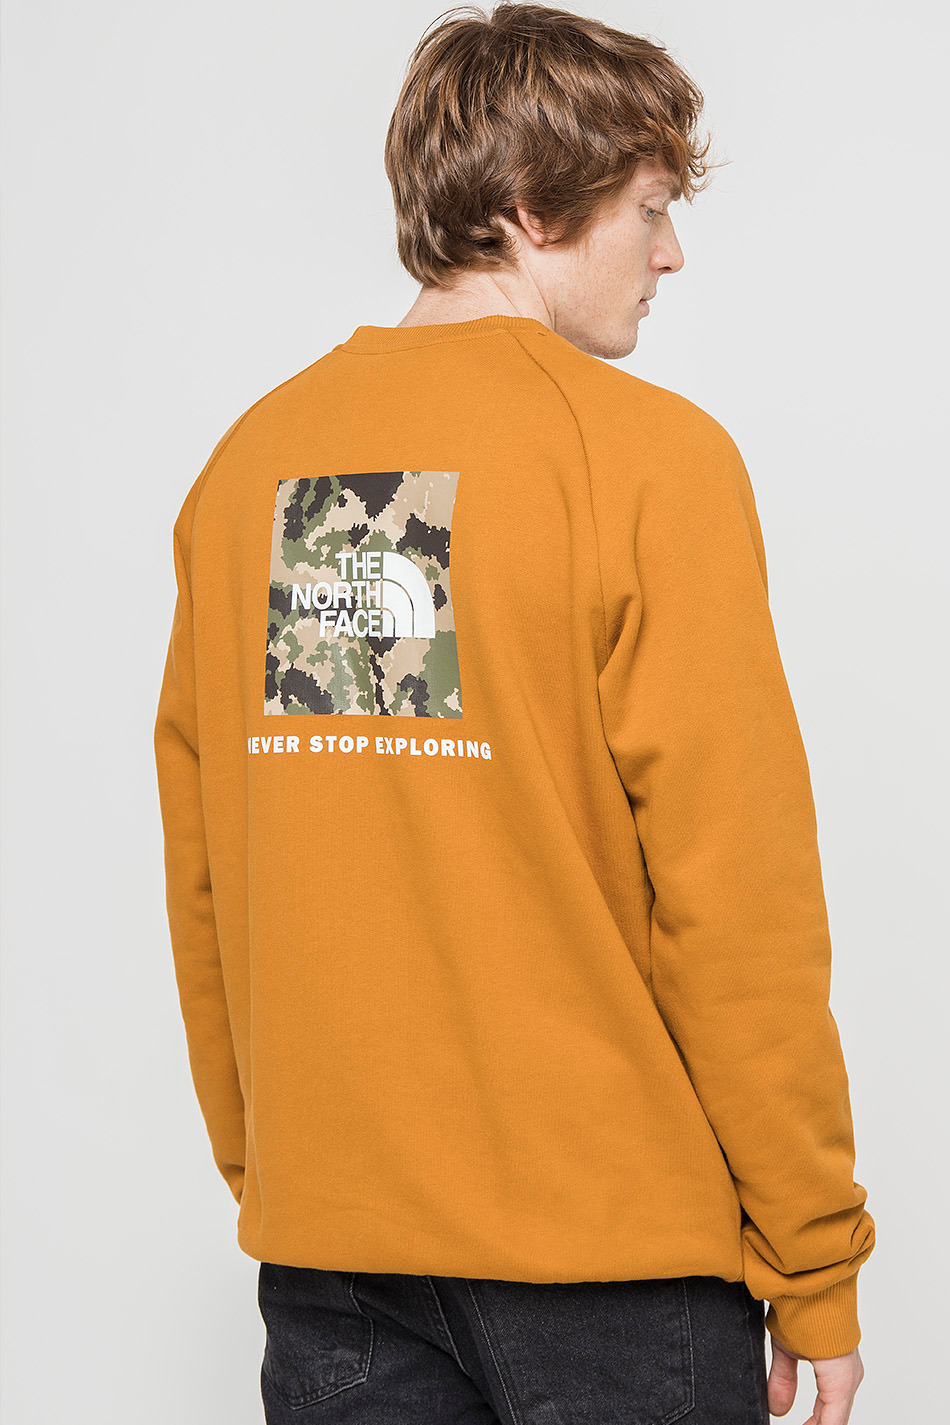 The North Face Redbox Sweatshirt